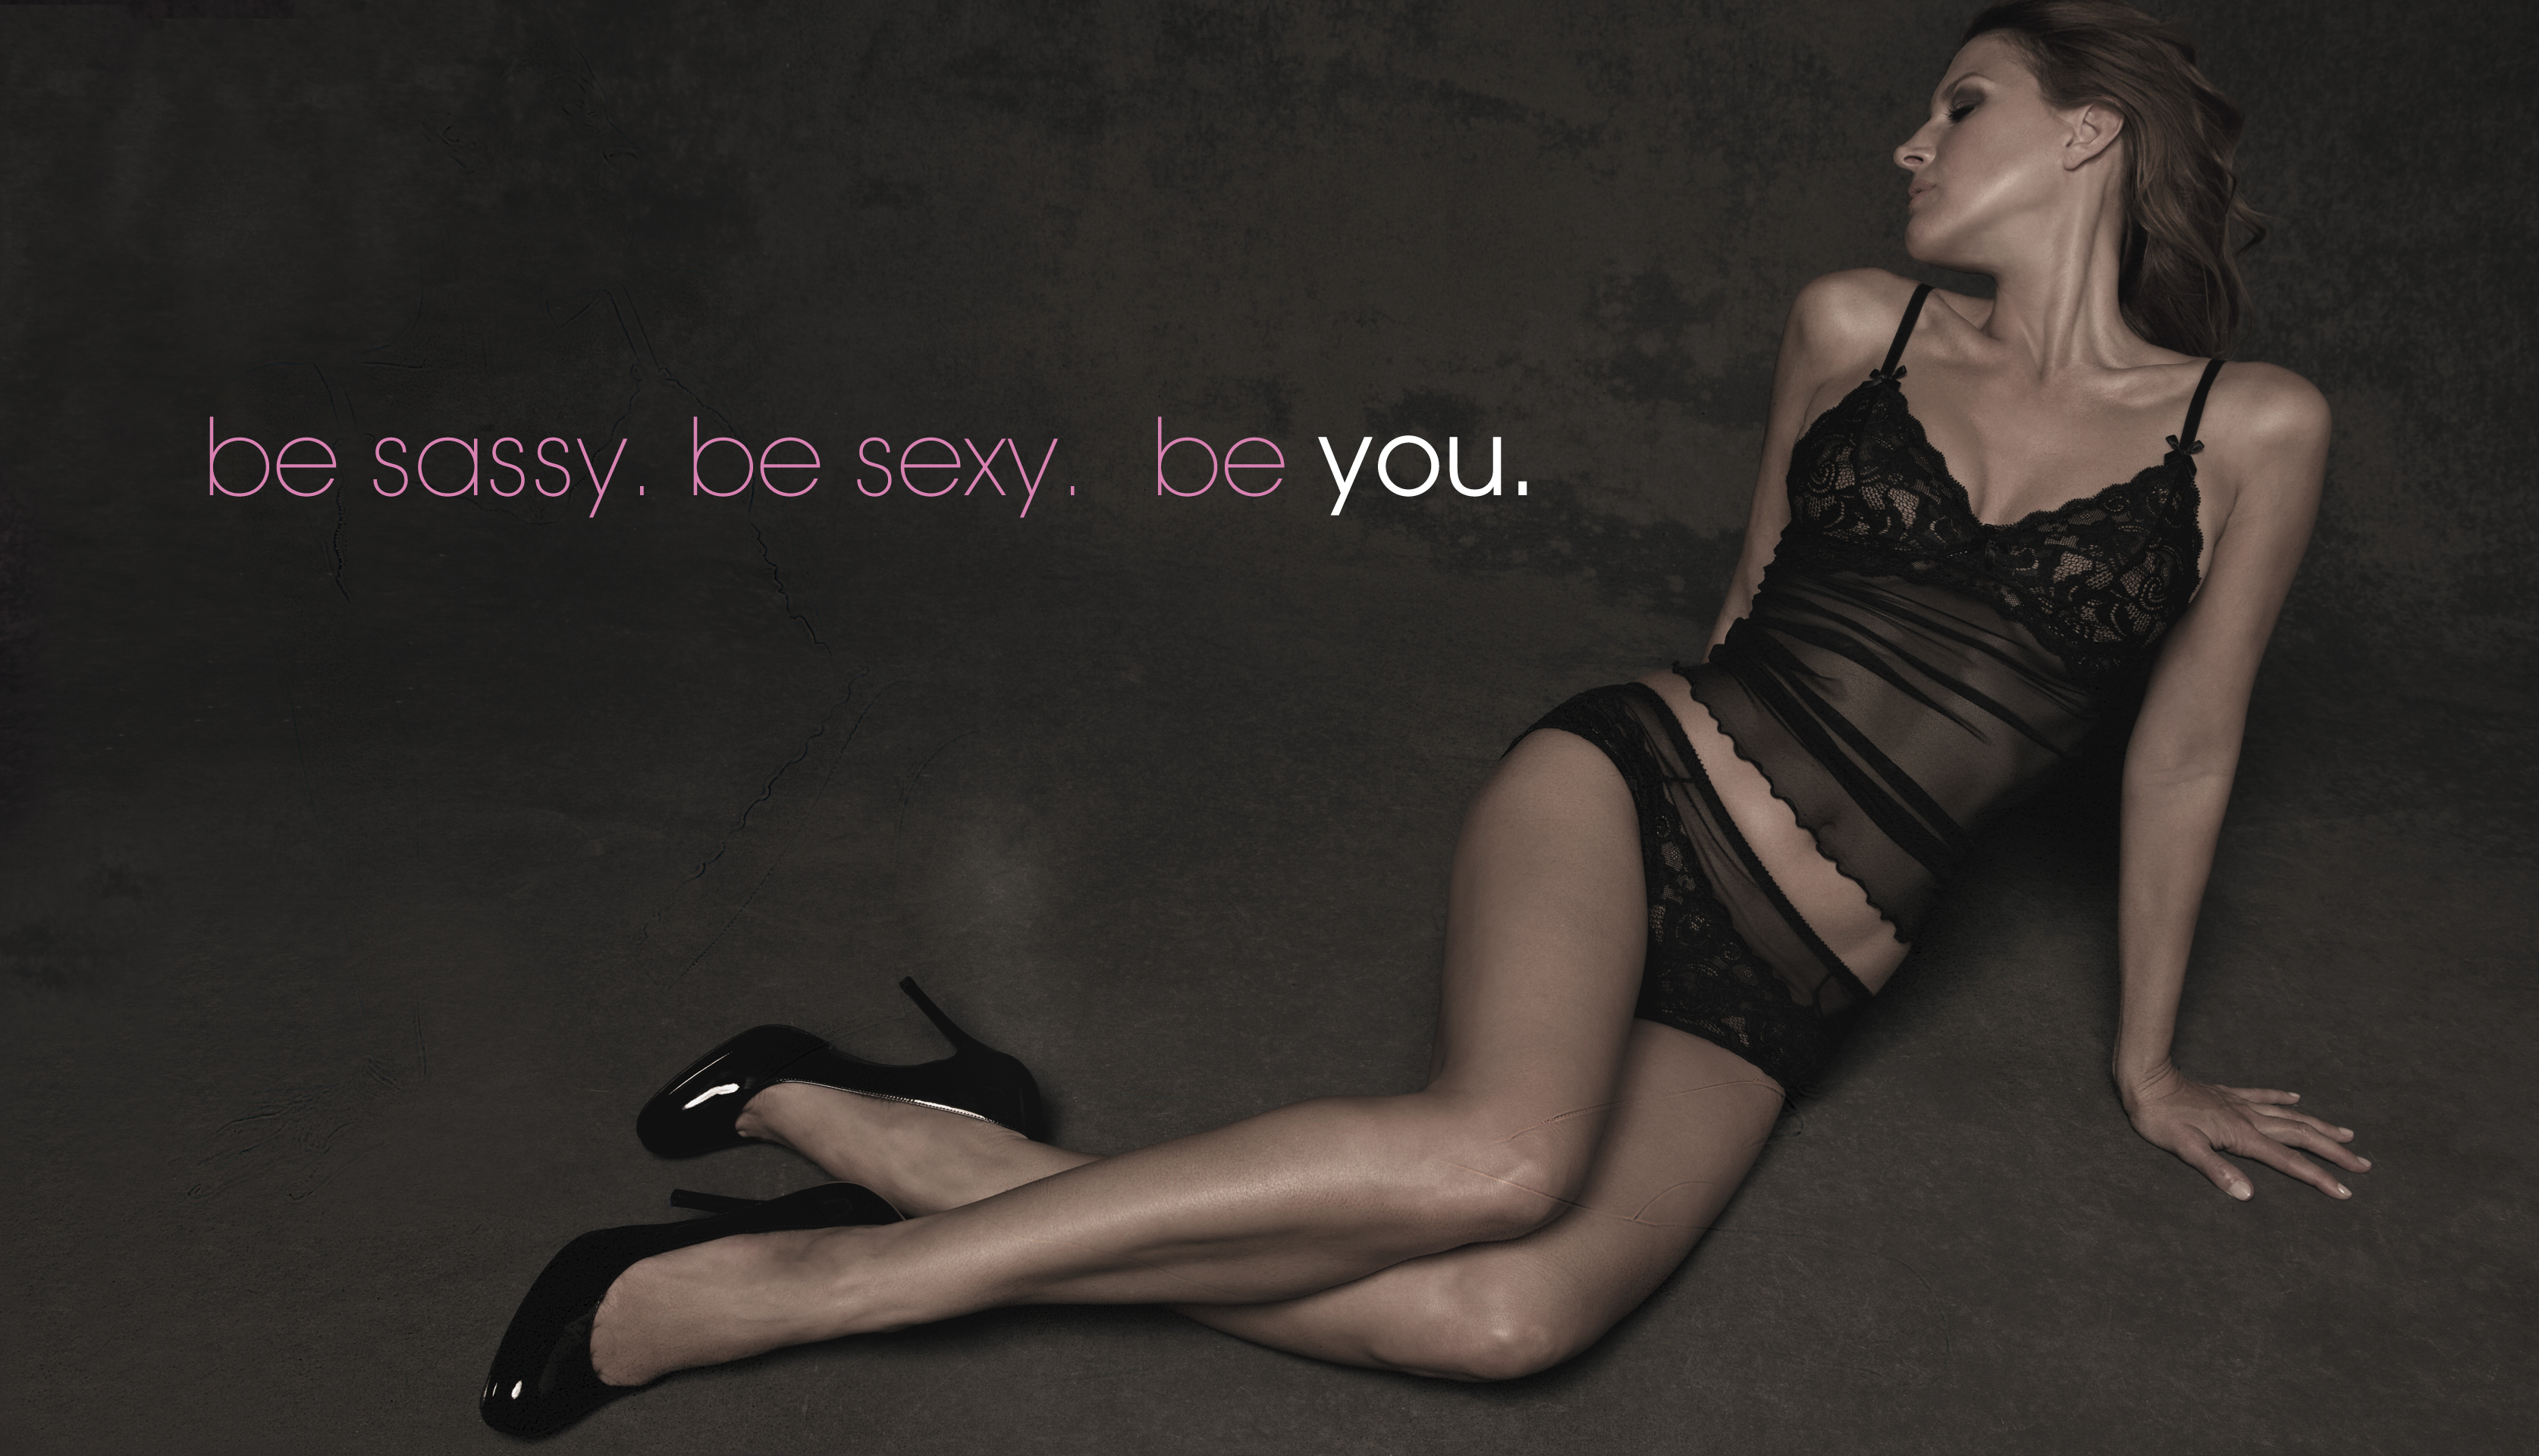 Sassybax Campaign photo by Michele Laurita